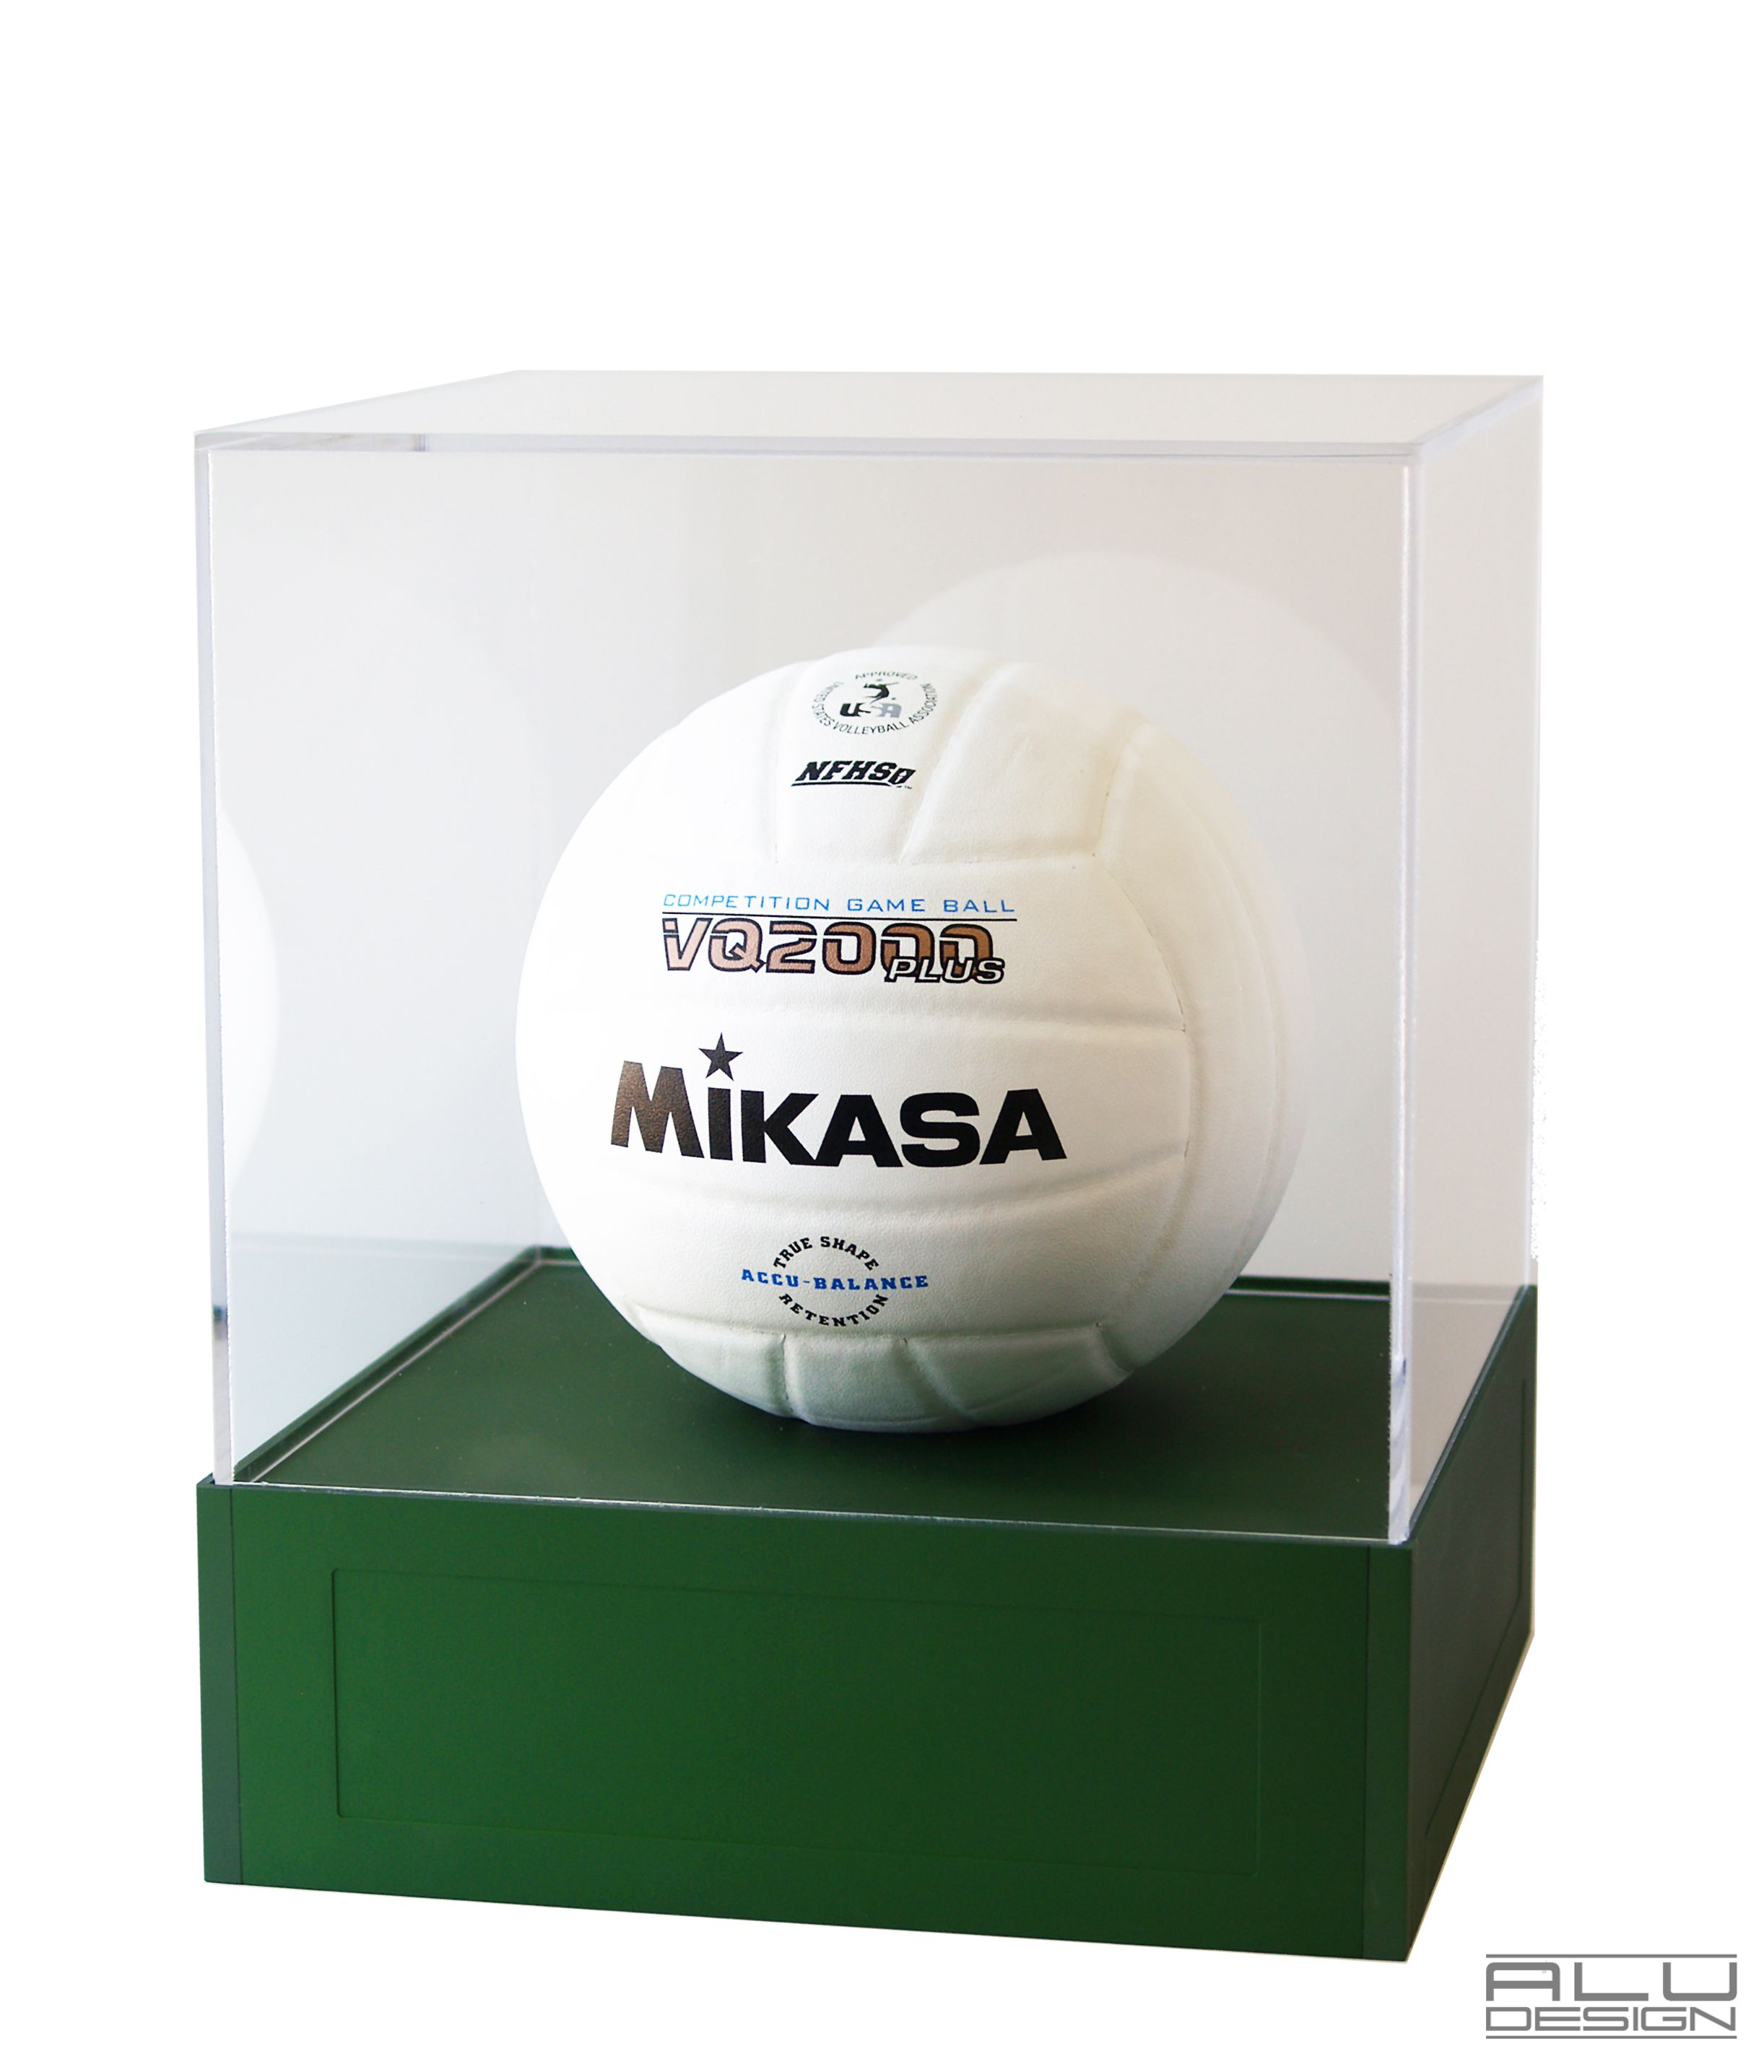 Volleyball Display Case Cnc Machined Anodized Aluminum Green Available In Various Colors We Can Add Your Team Logo Or Spec Display Case Laser Engraving Display